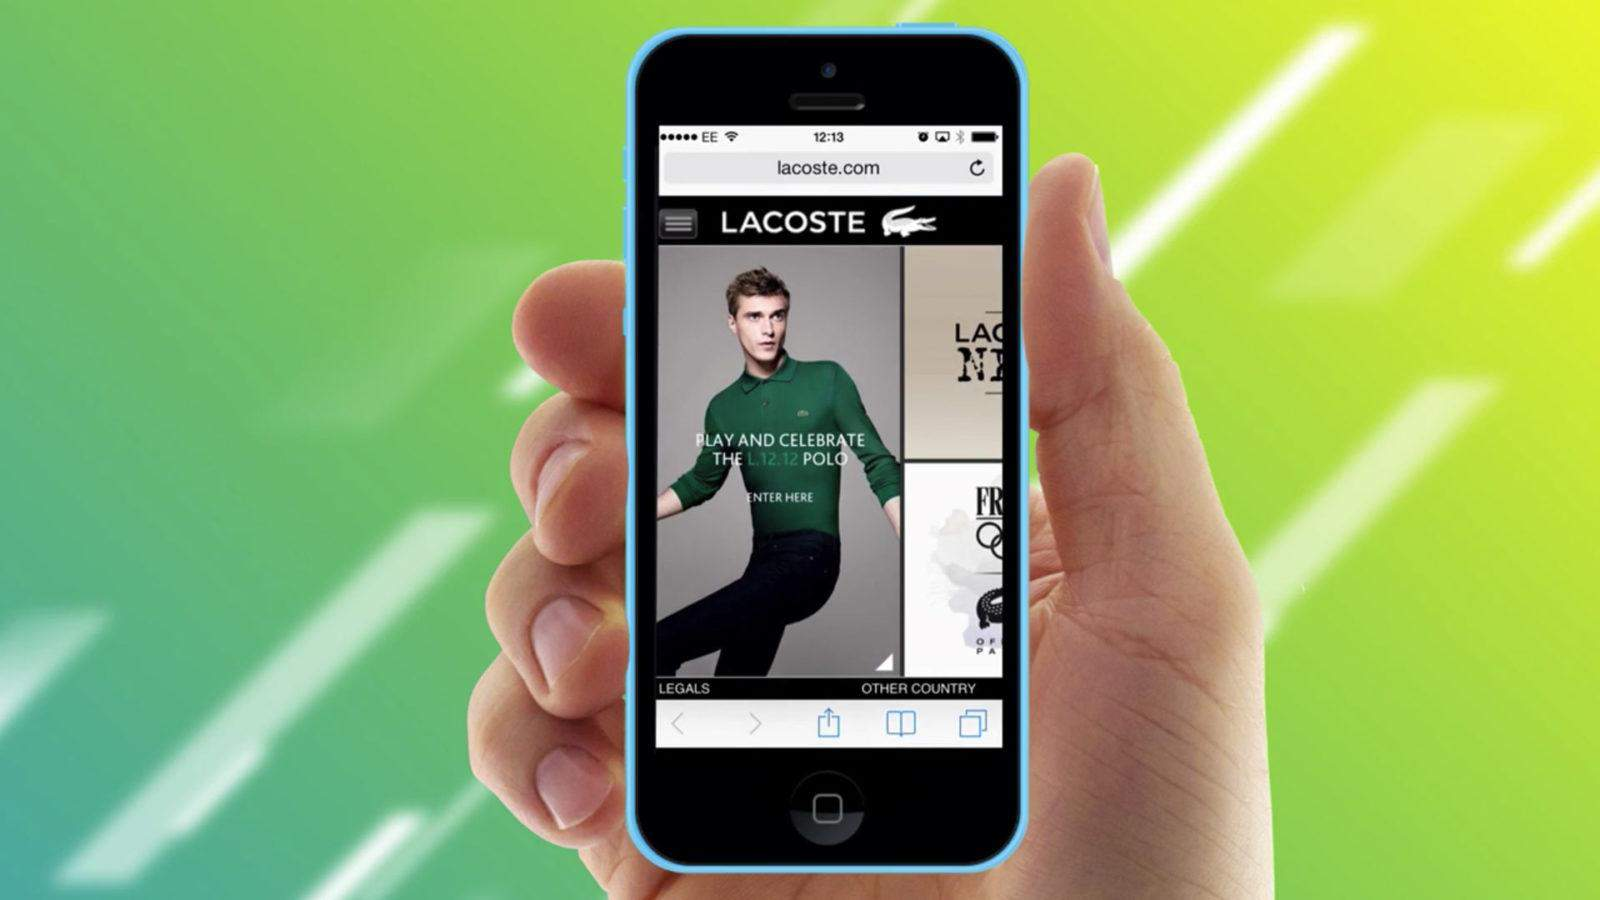 Lacoste augmented reality app